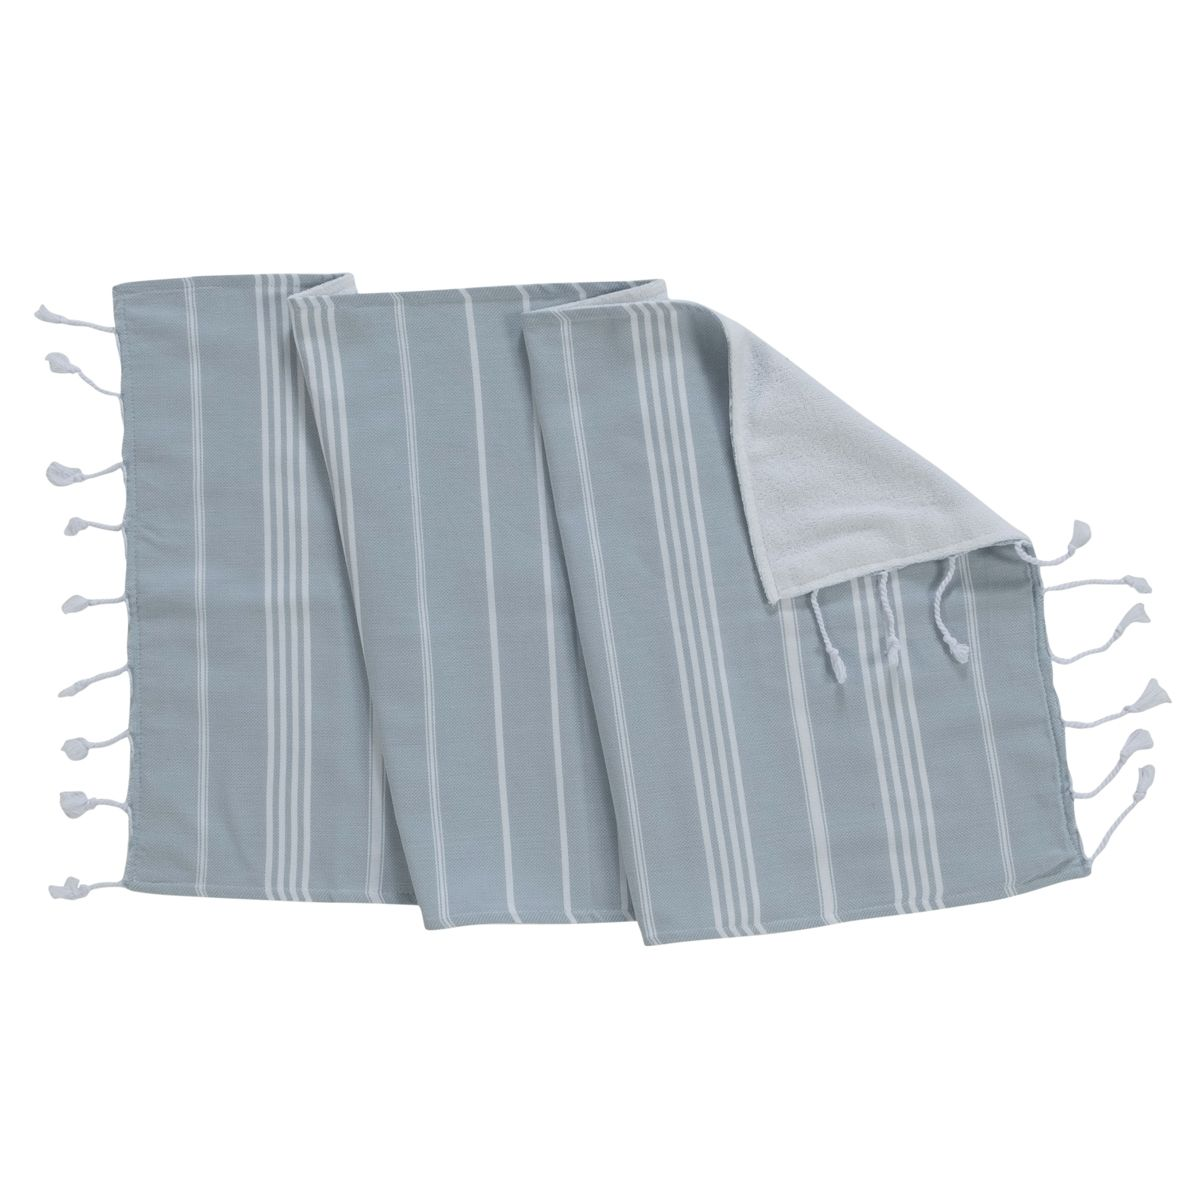 Peshtowel Mini Ani - Light Blue